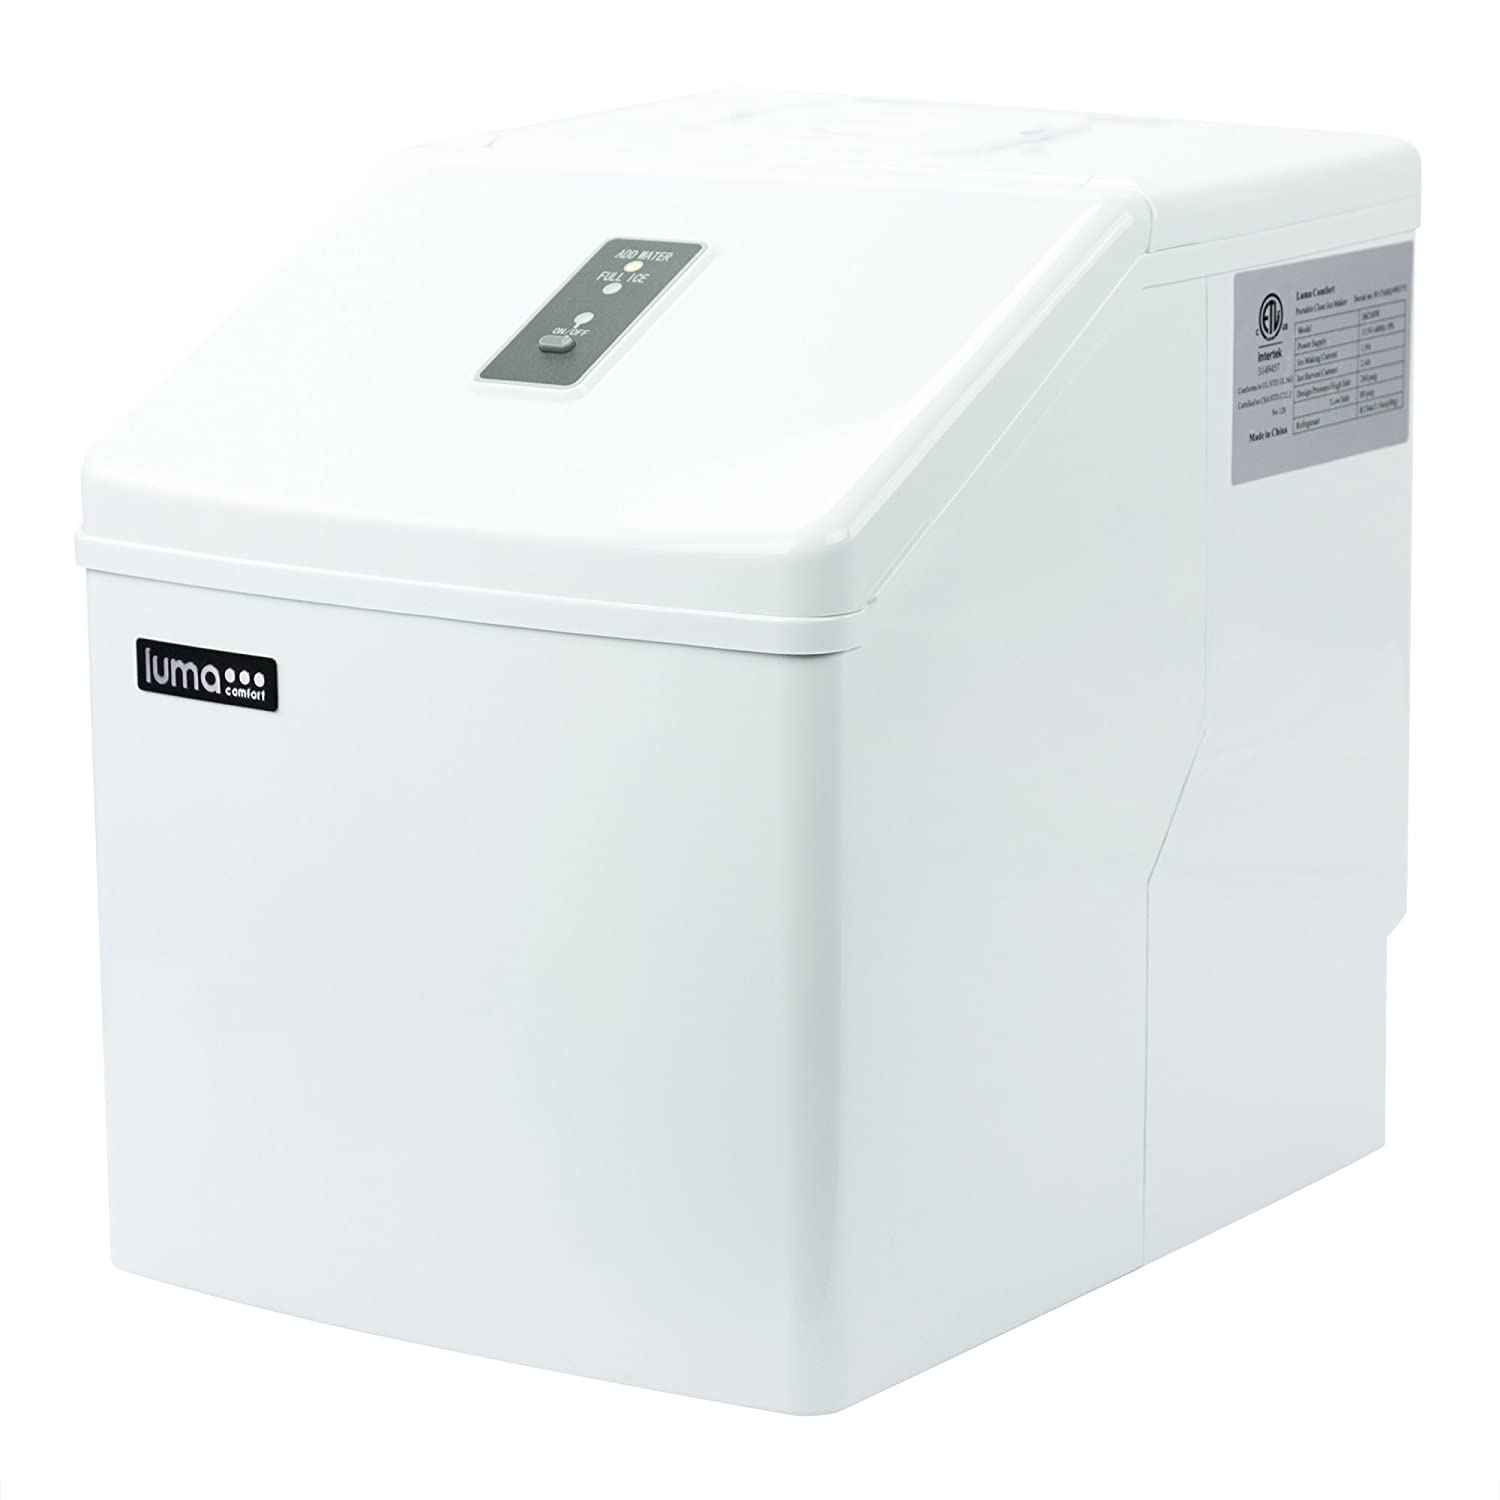 Luma Comfort IM200W Ice Maker 28 Pound White